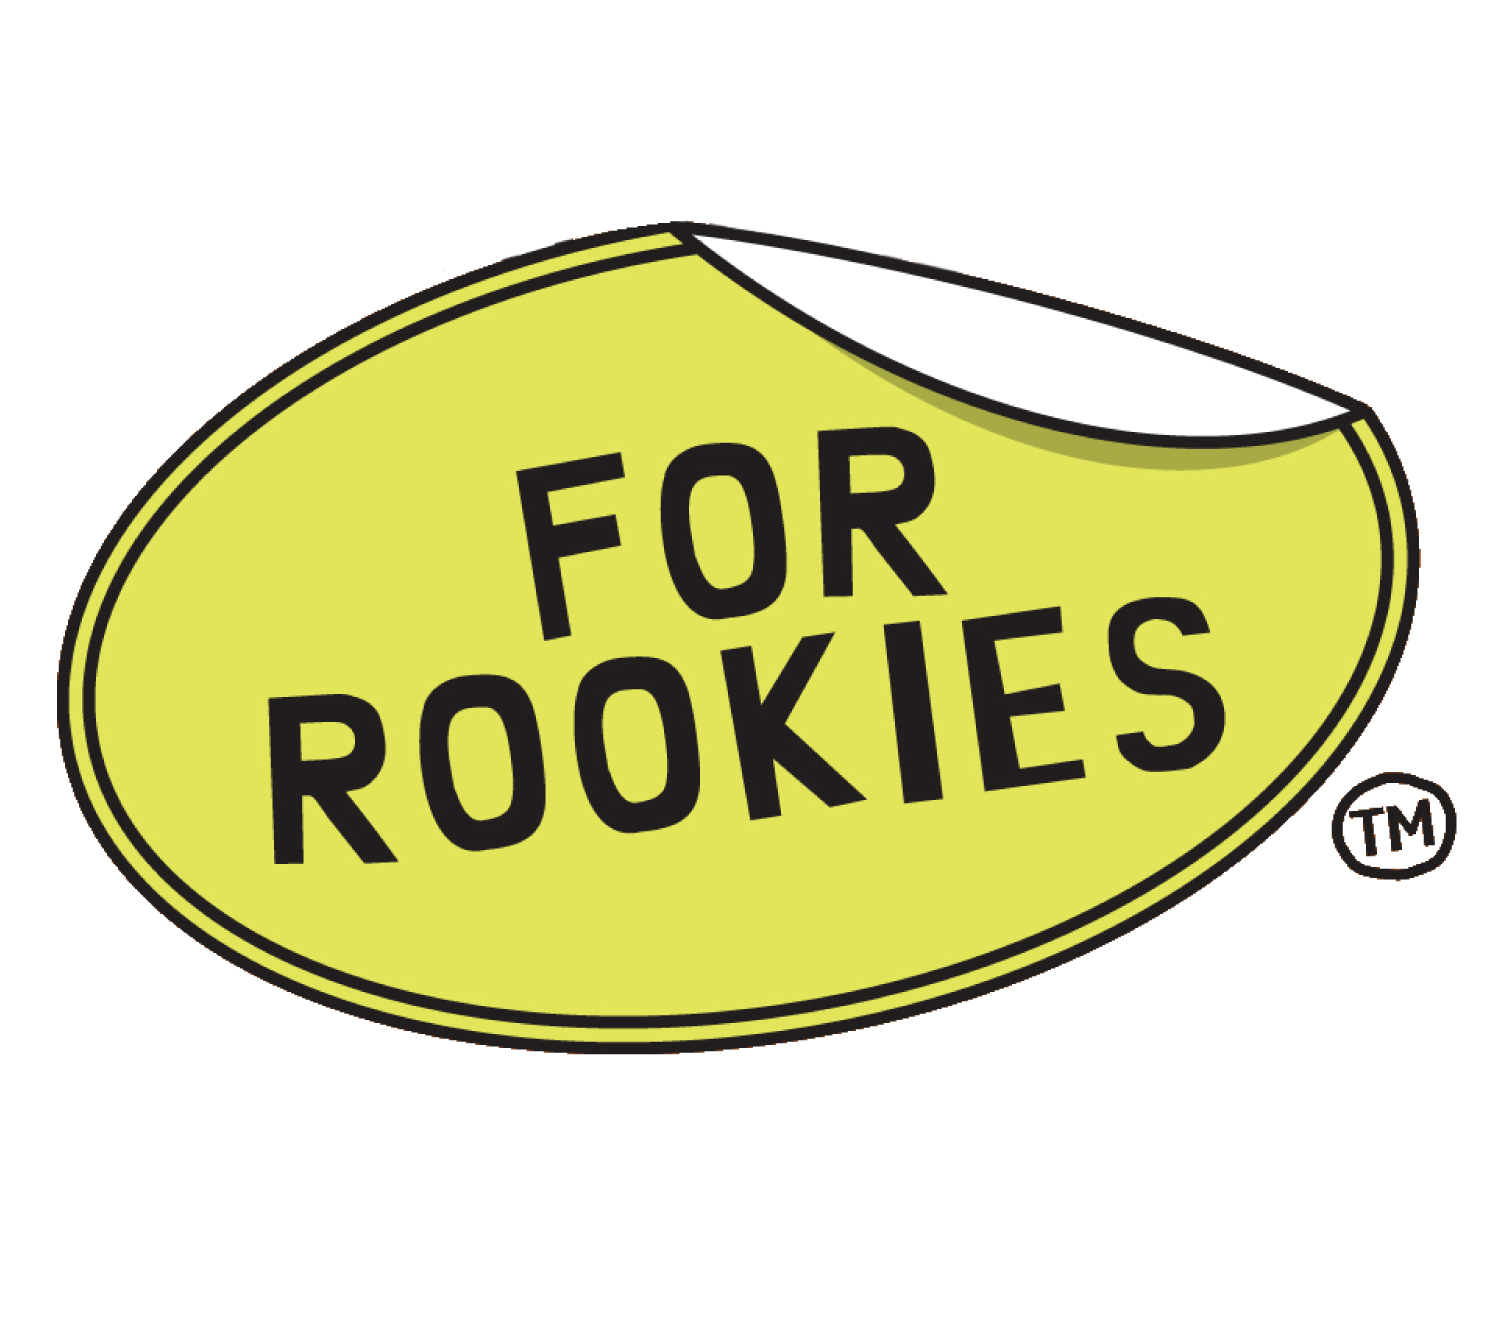 Books For Rookies